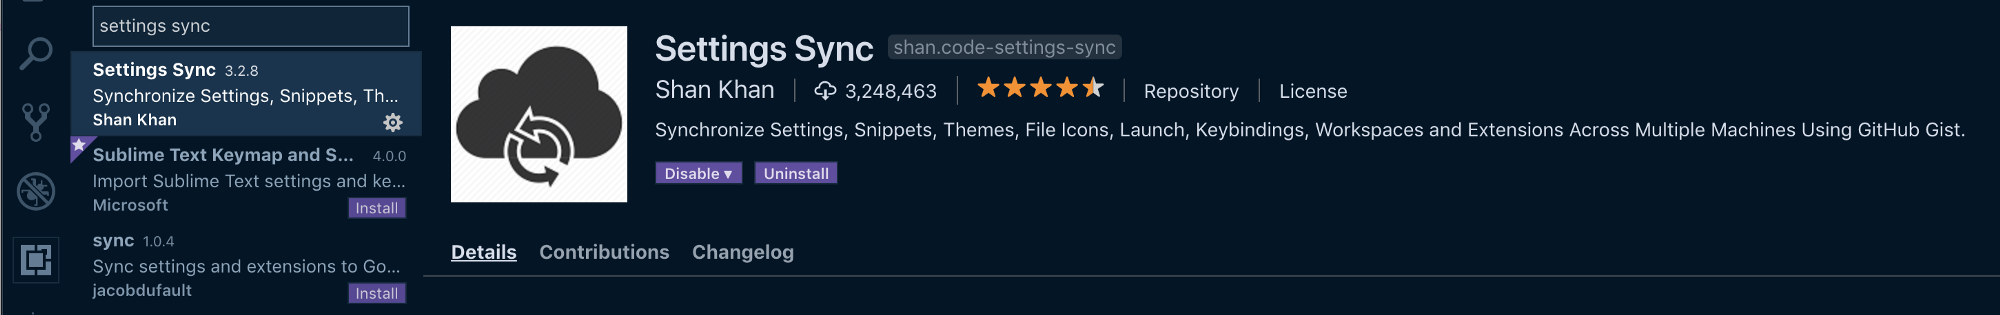 Take Your VS Code Configuration Anywhere Easily with Settings Sync